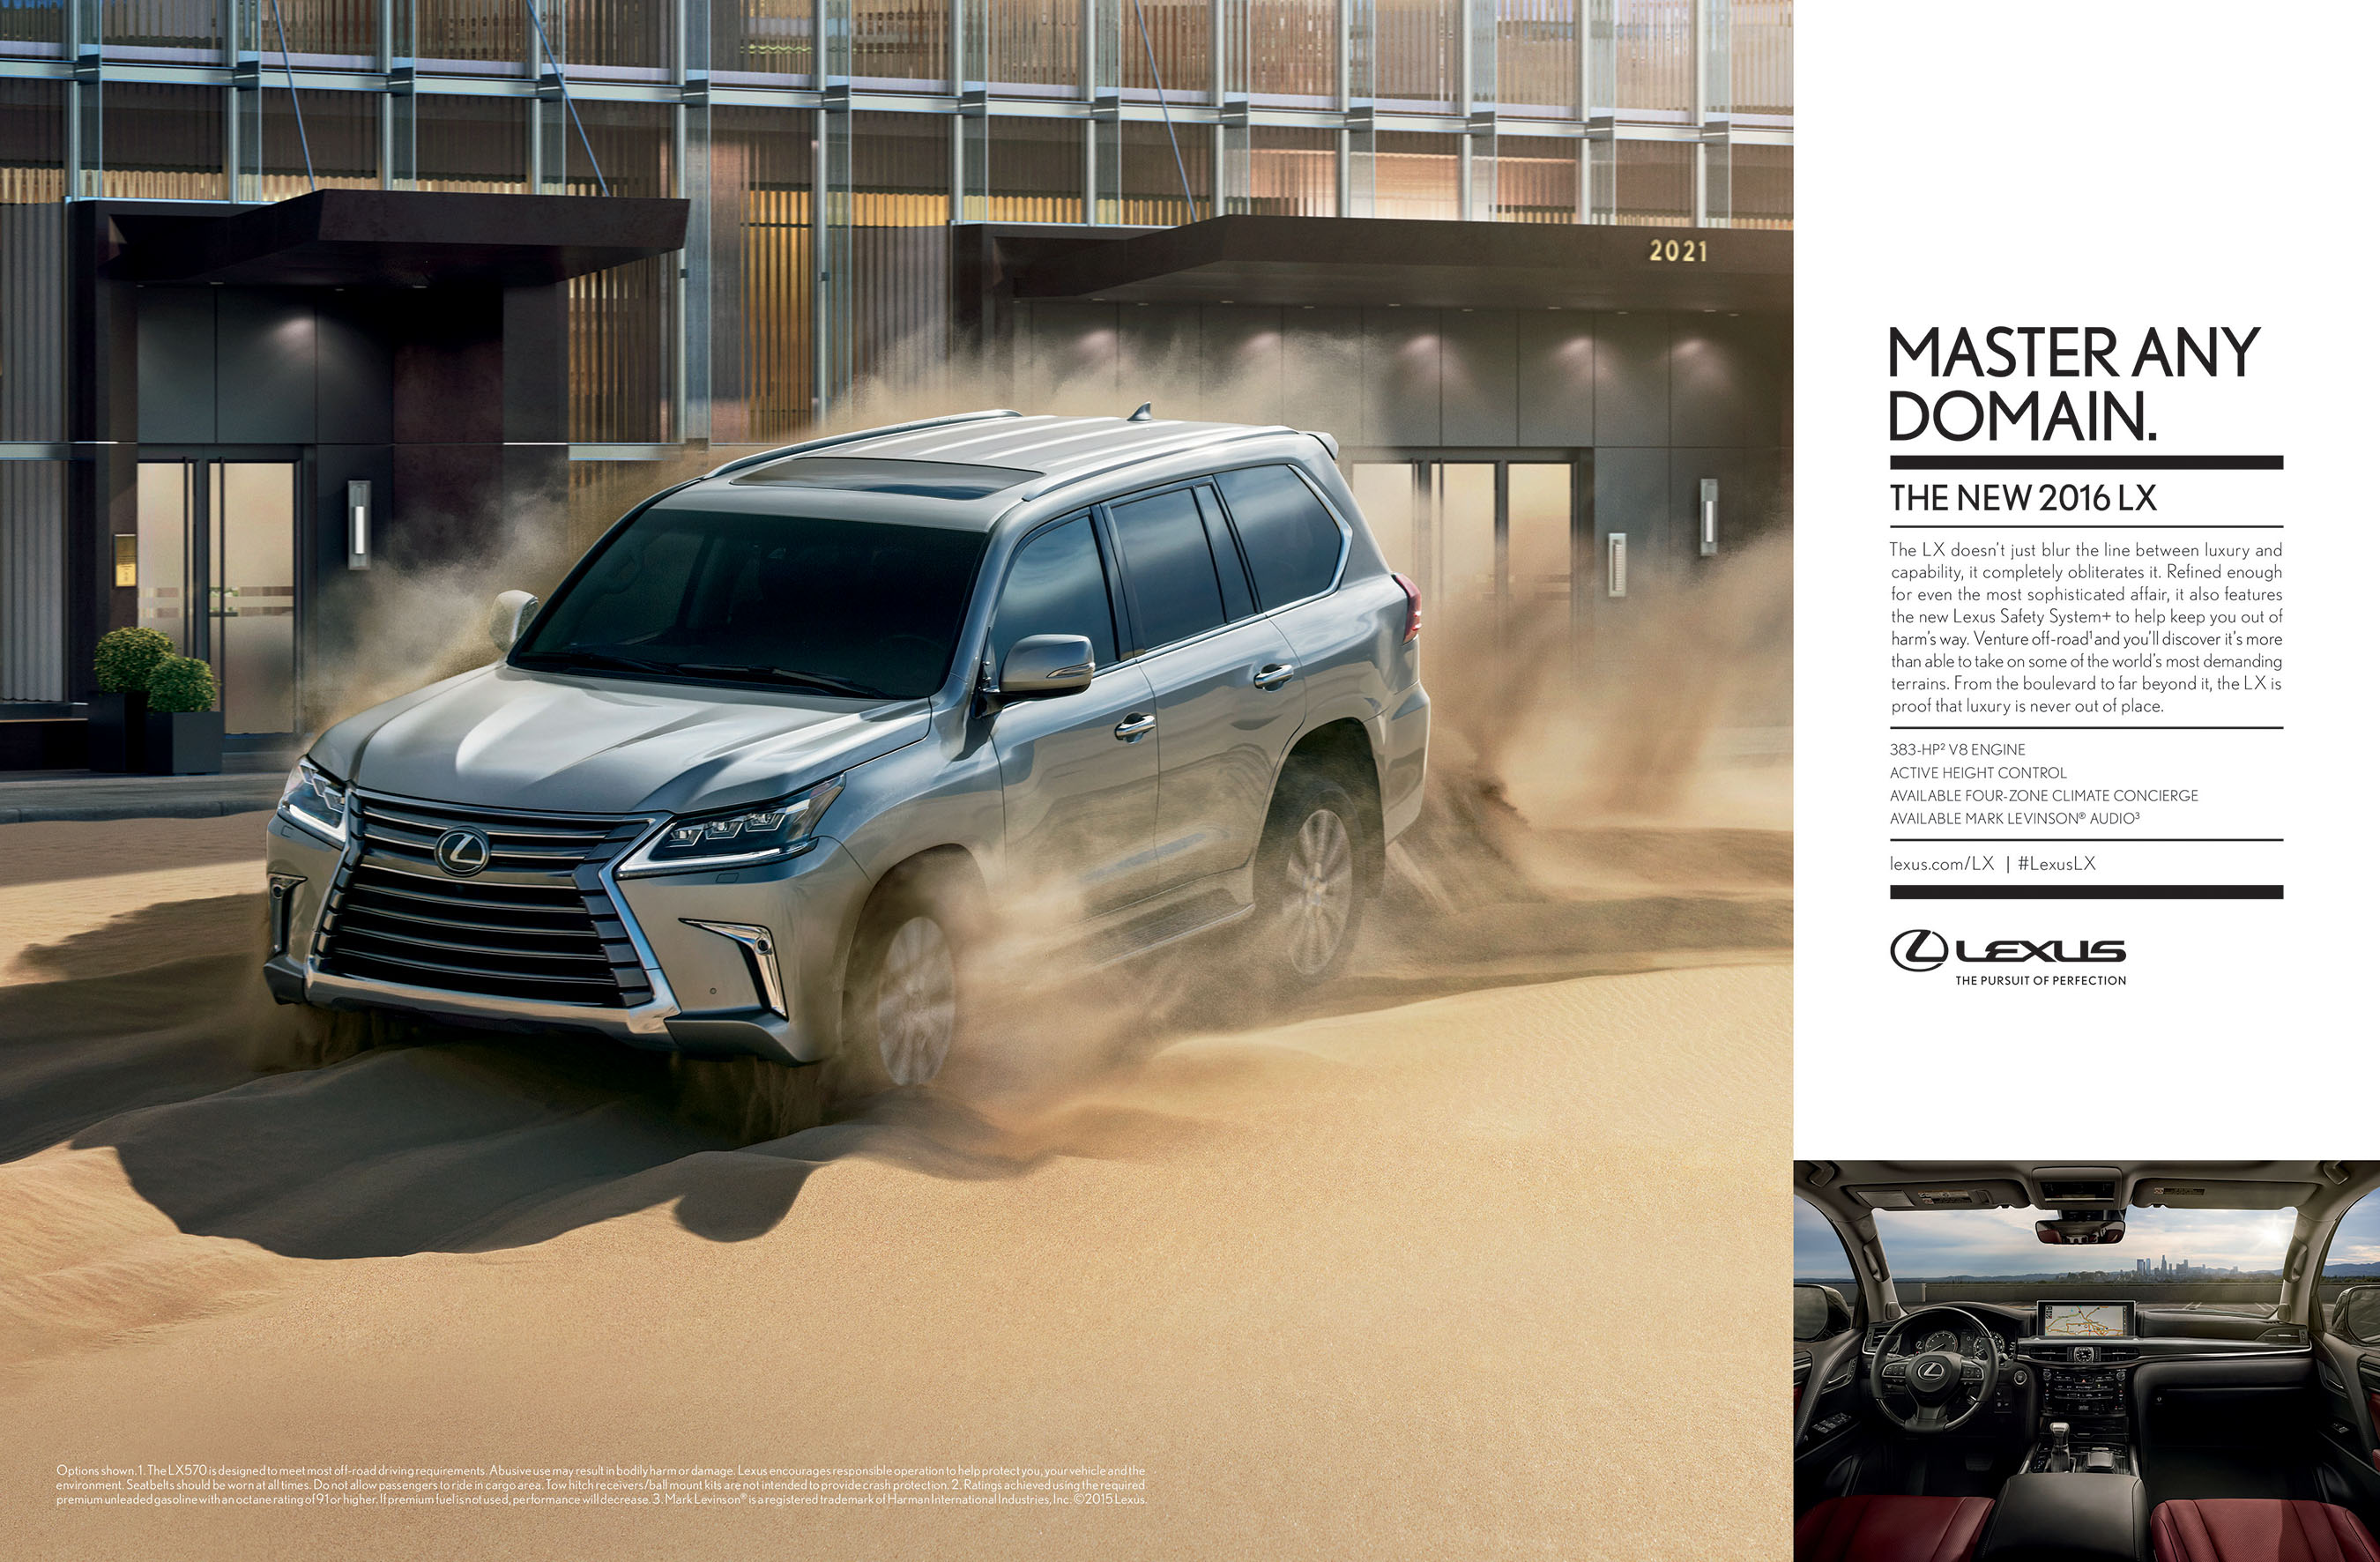 The Ultimate in Refinement Meets the Ultimate in Capability with the New Lexus LX